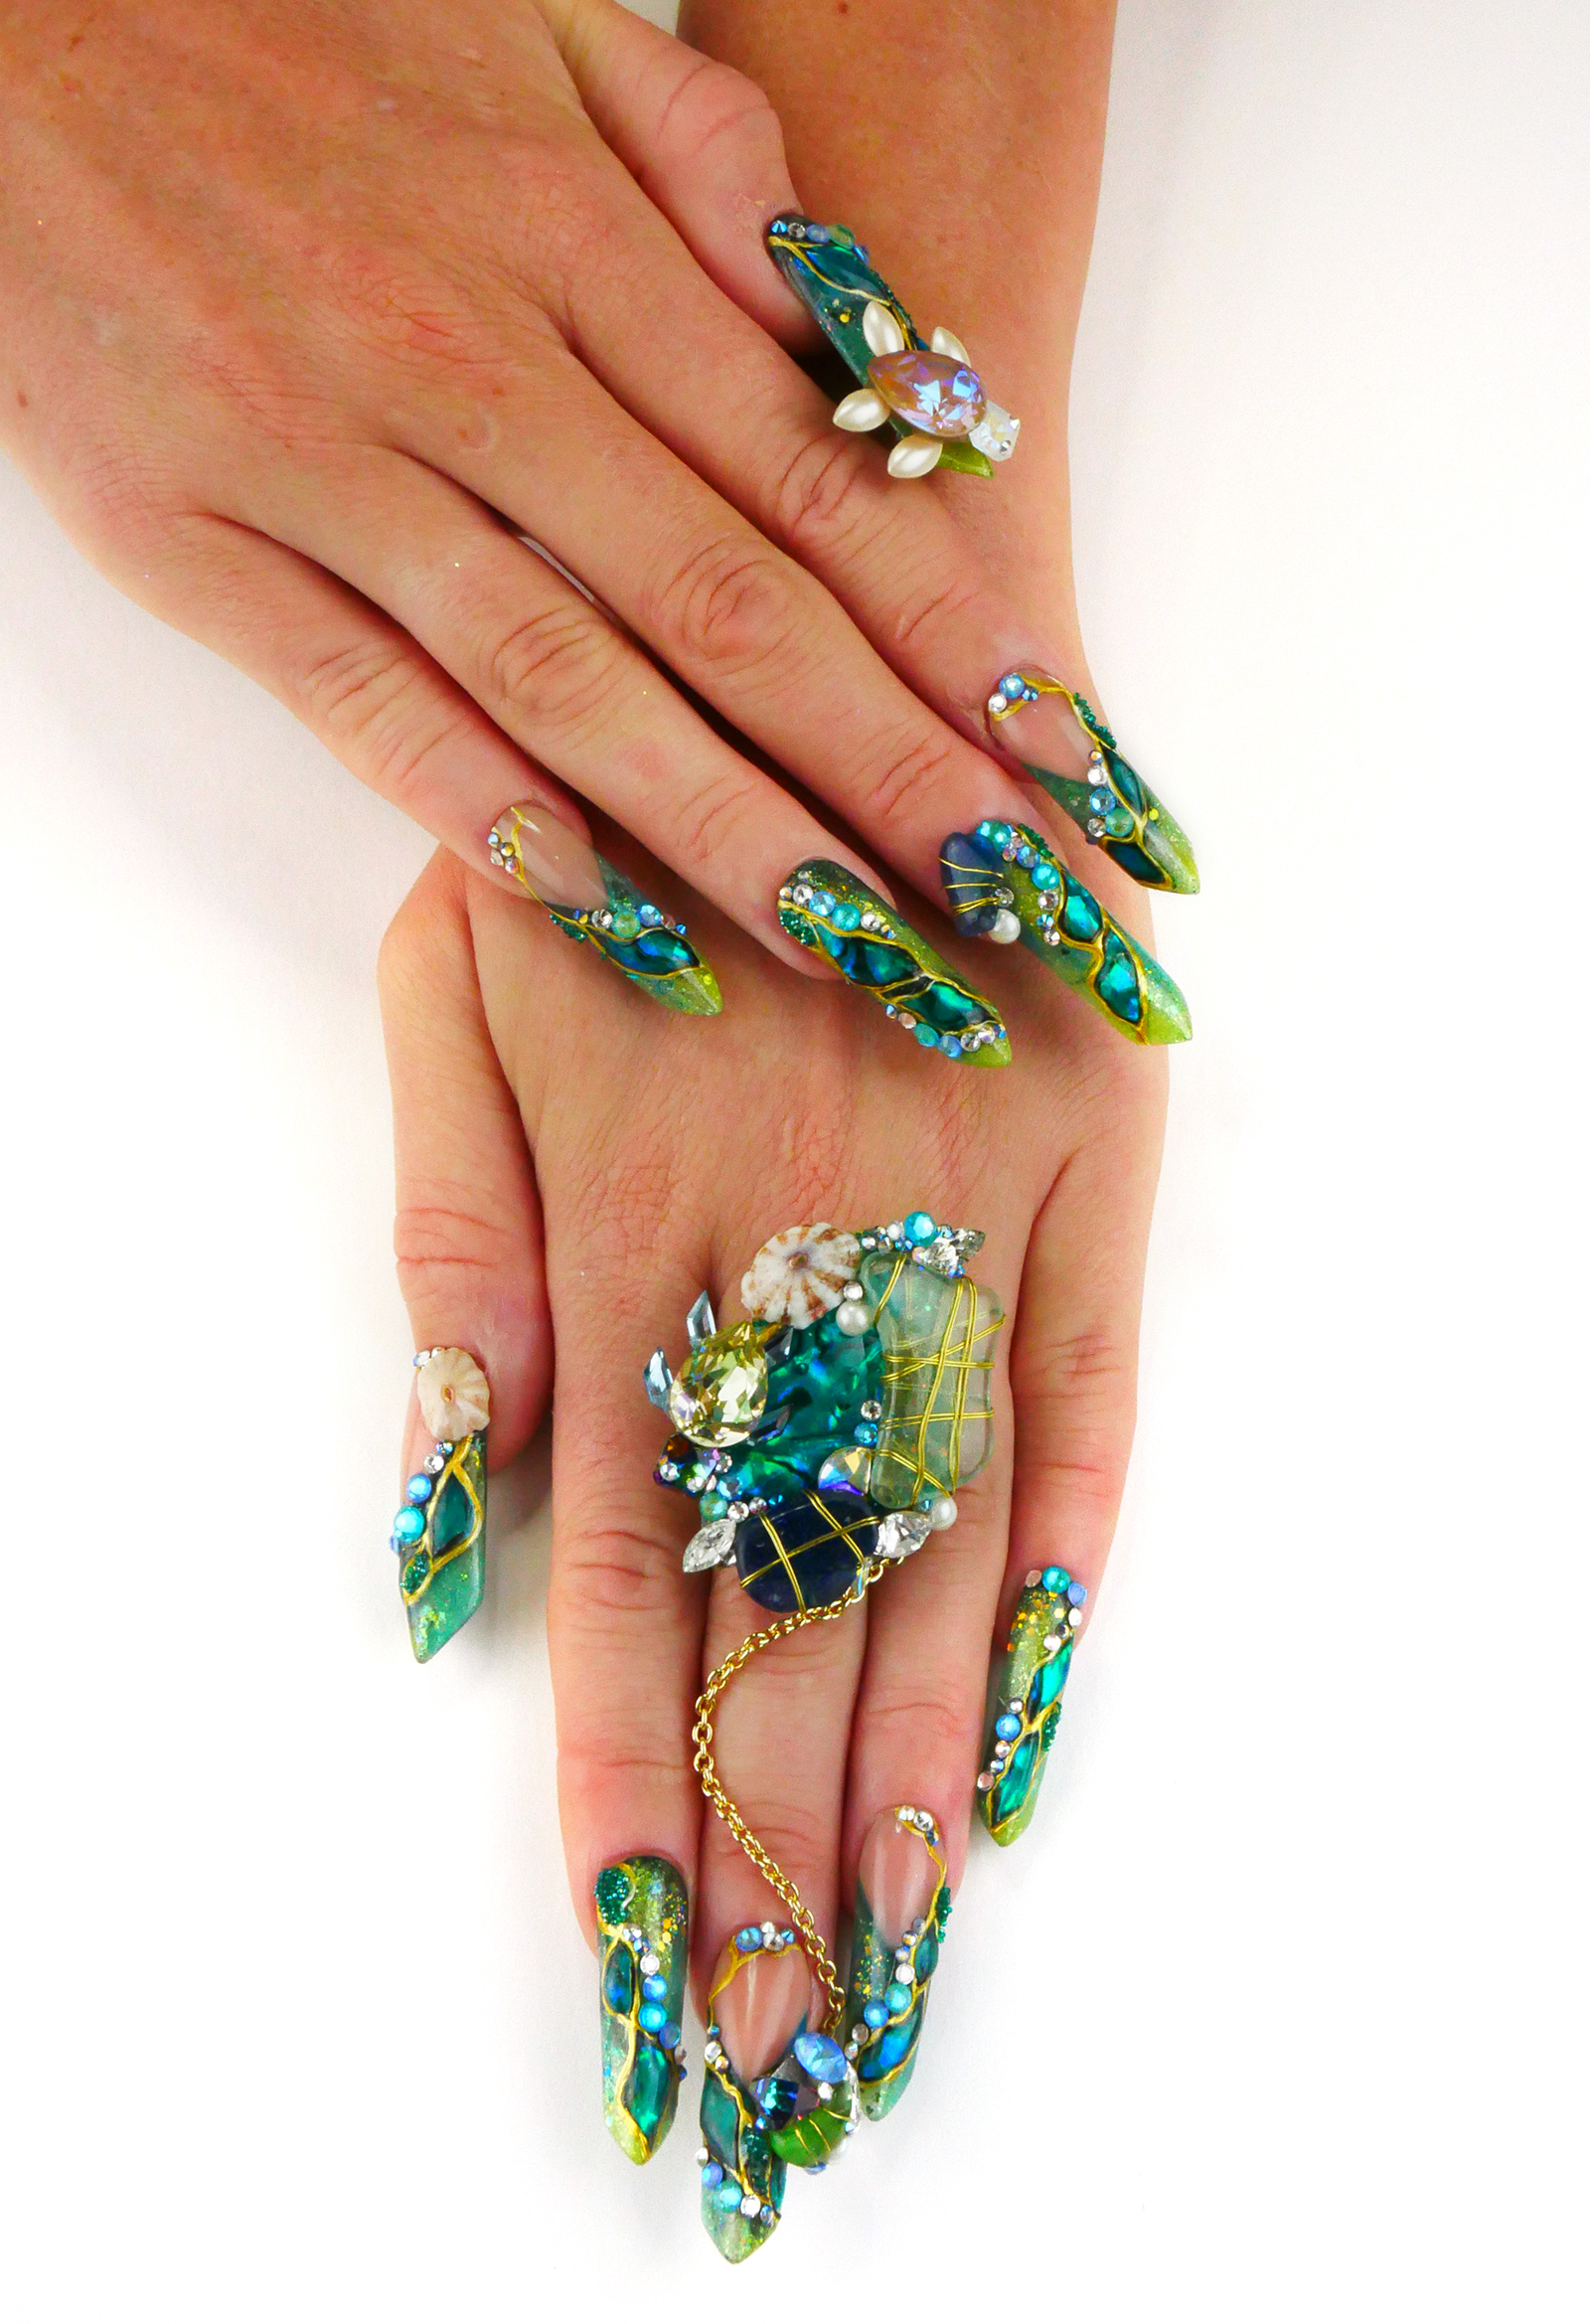 NTNA S. 7 Pre-Challenge 2: Ascension Island Nail Art (Carrie-Leigh)